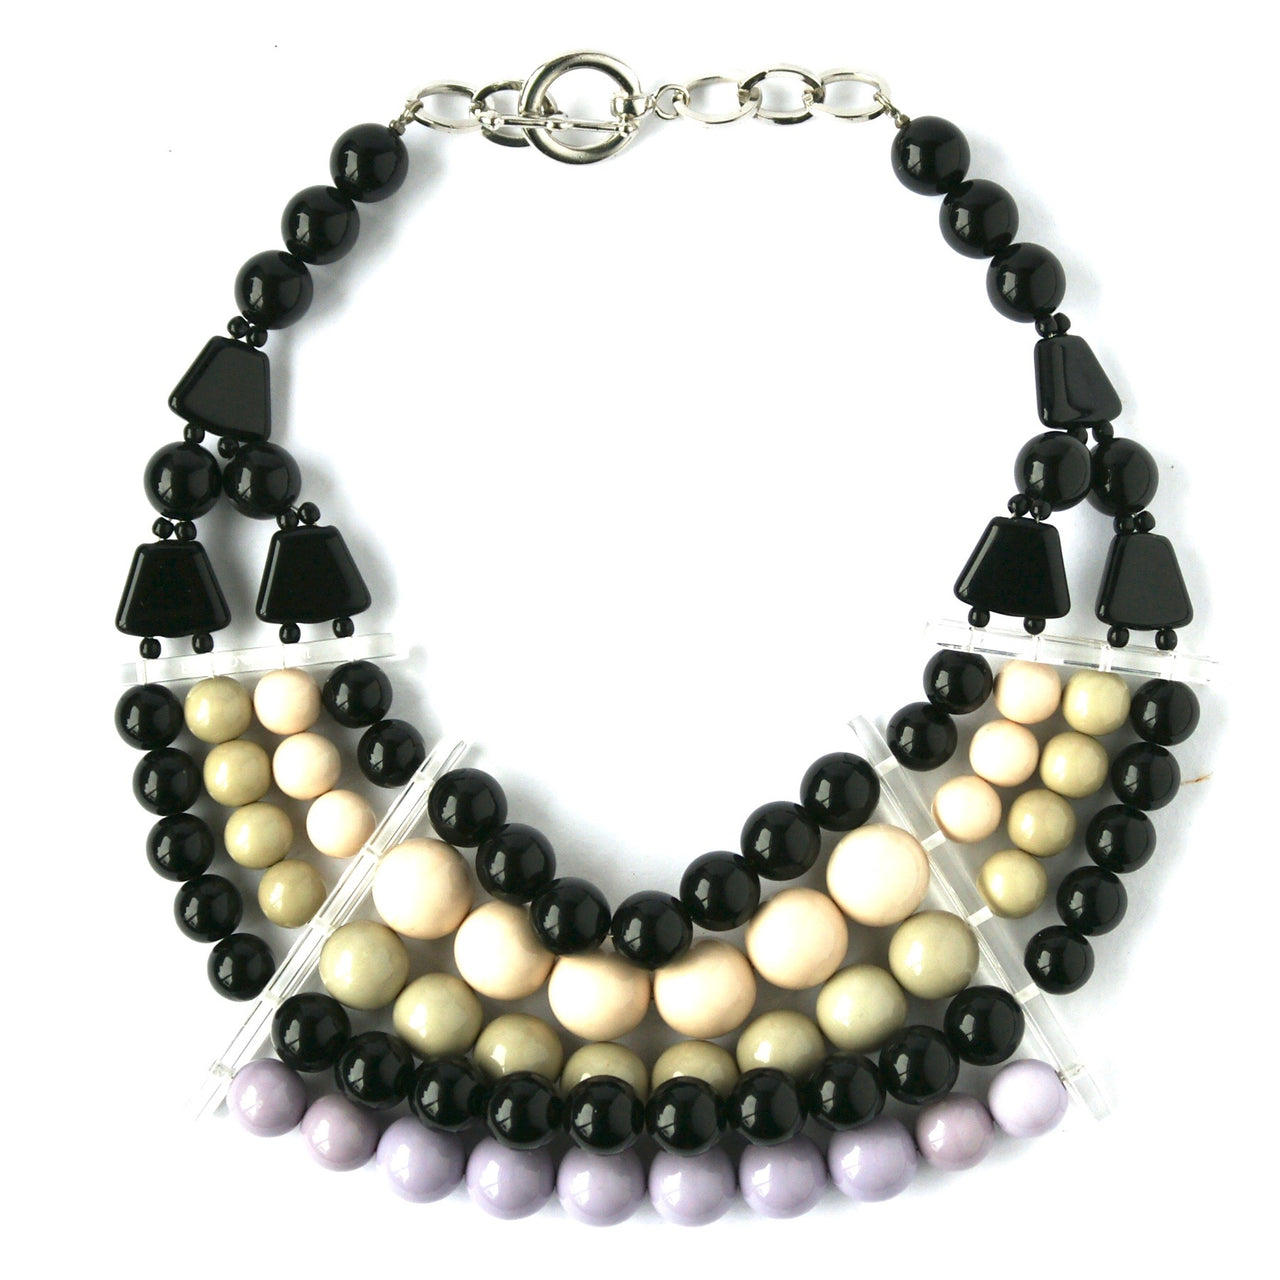 Eclectica Vintage Jewellery | UK | 1990s Vintage Emporio Armani Chunky Beaded Necklace